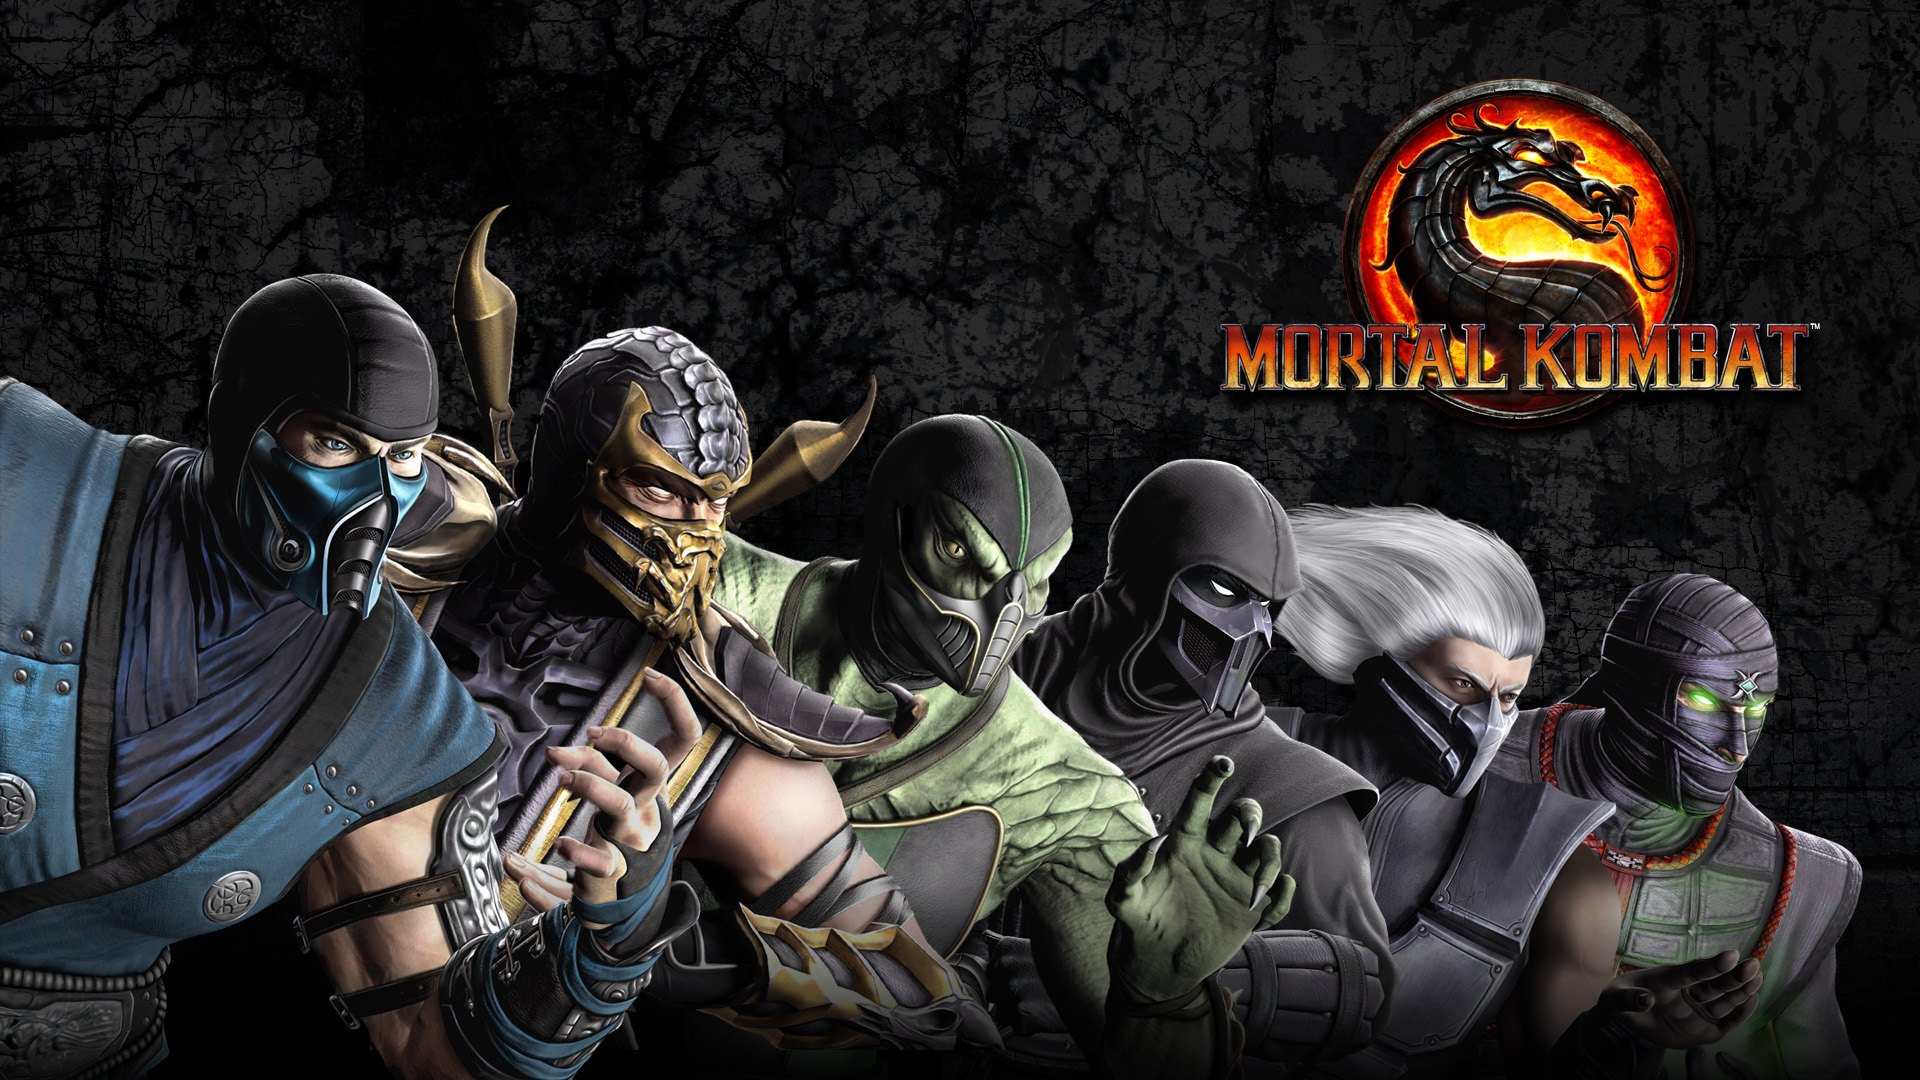 Mortal Kombat Ninja Wallpaper by Poser96